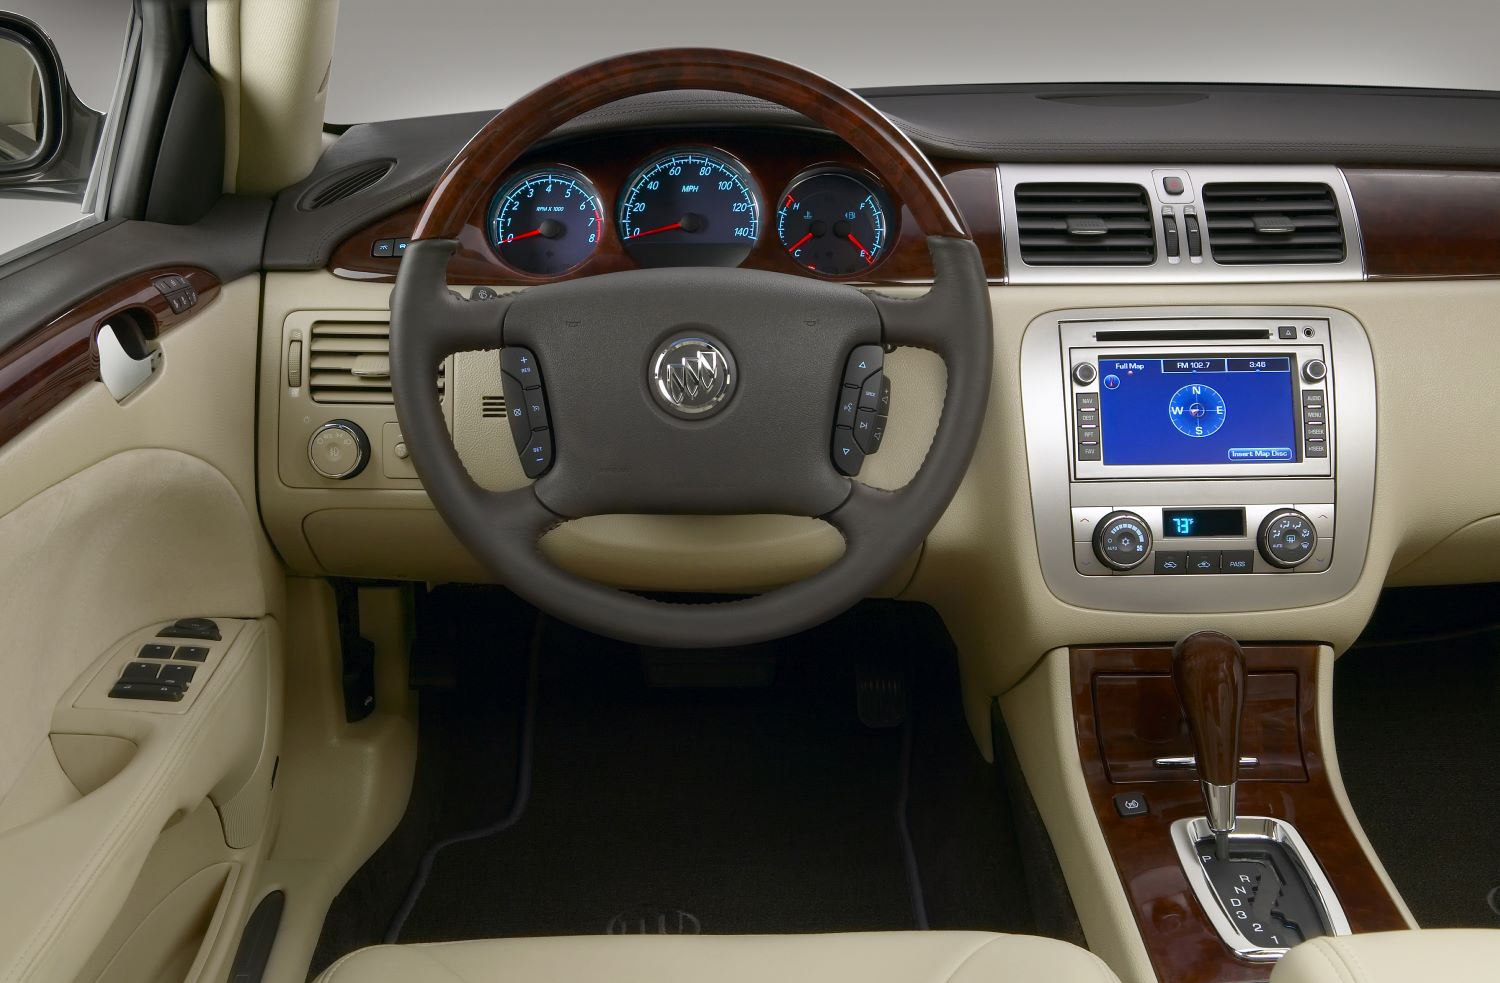 2006 Buick Lucerne Prone To Engine Problems | Gm Authority 2022 Buick Lucerne Price, Engine, Oil